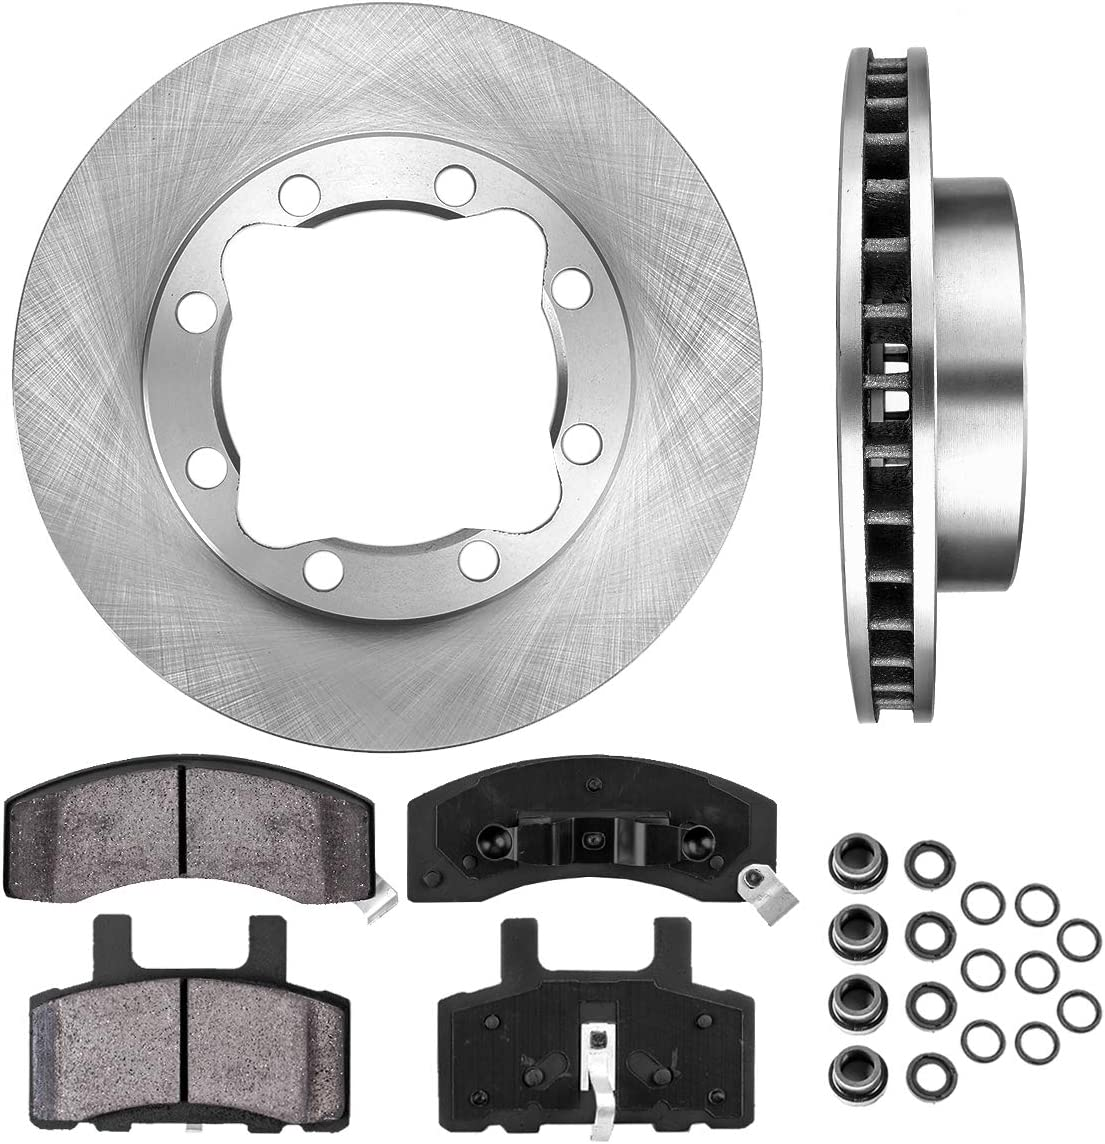 1992 1993 1994 1995 For Chevrolet K2500 Suburban Front Rotors and Pads 8 Lug